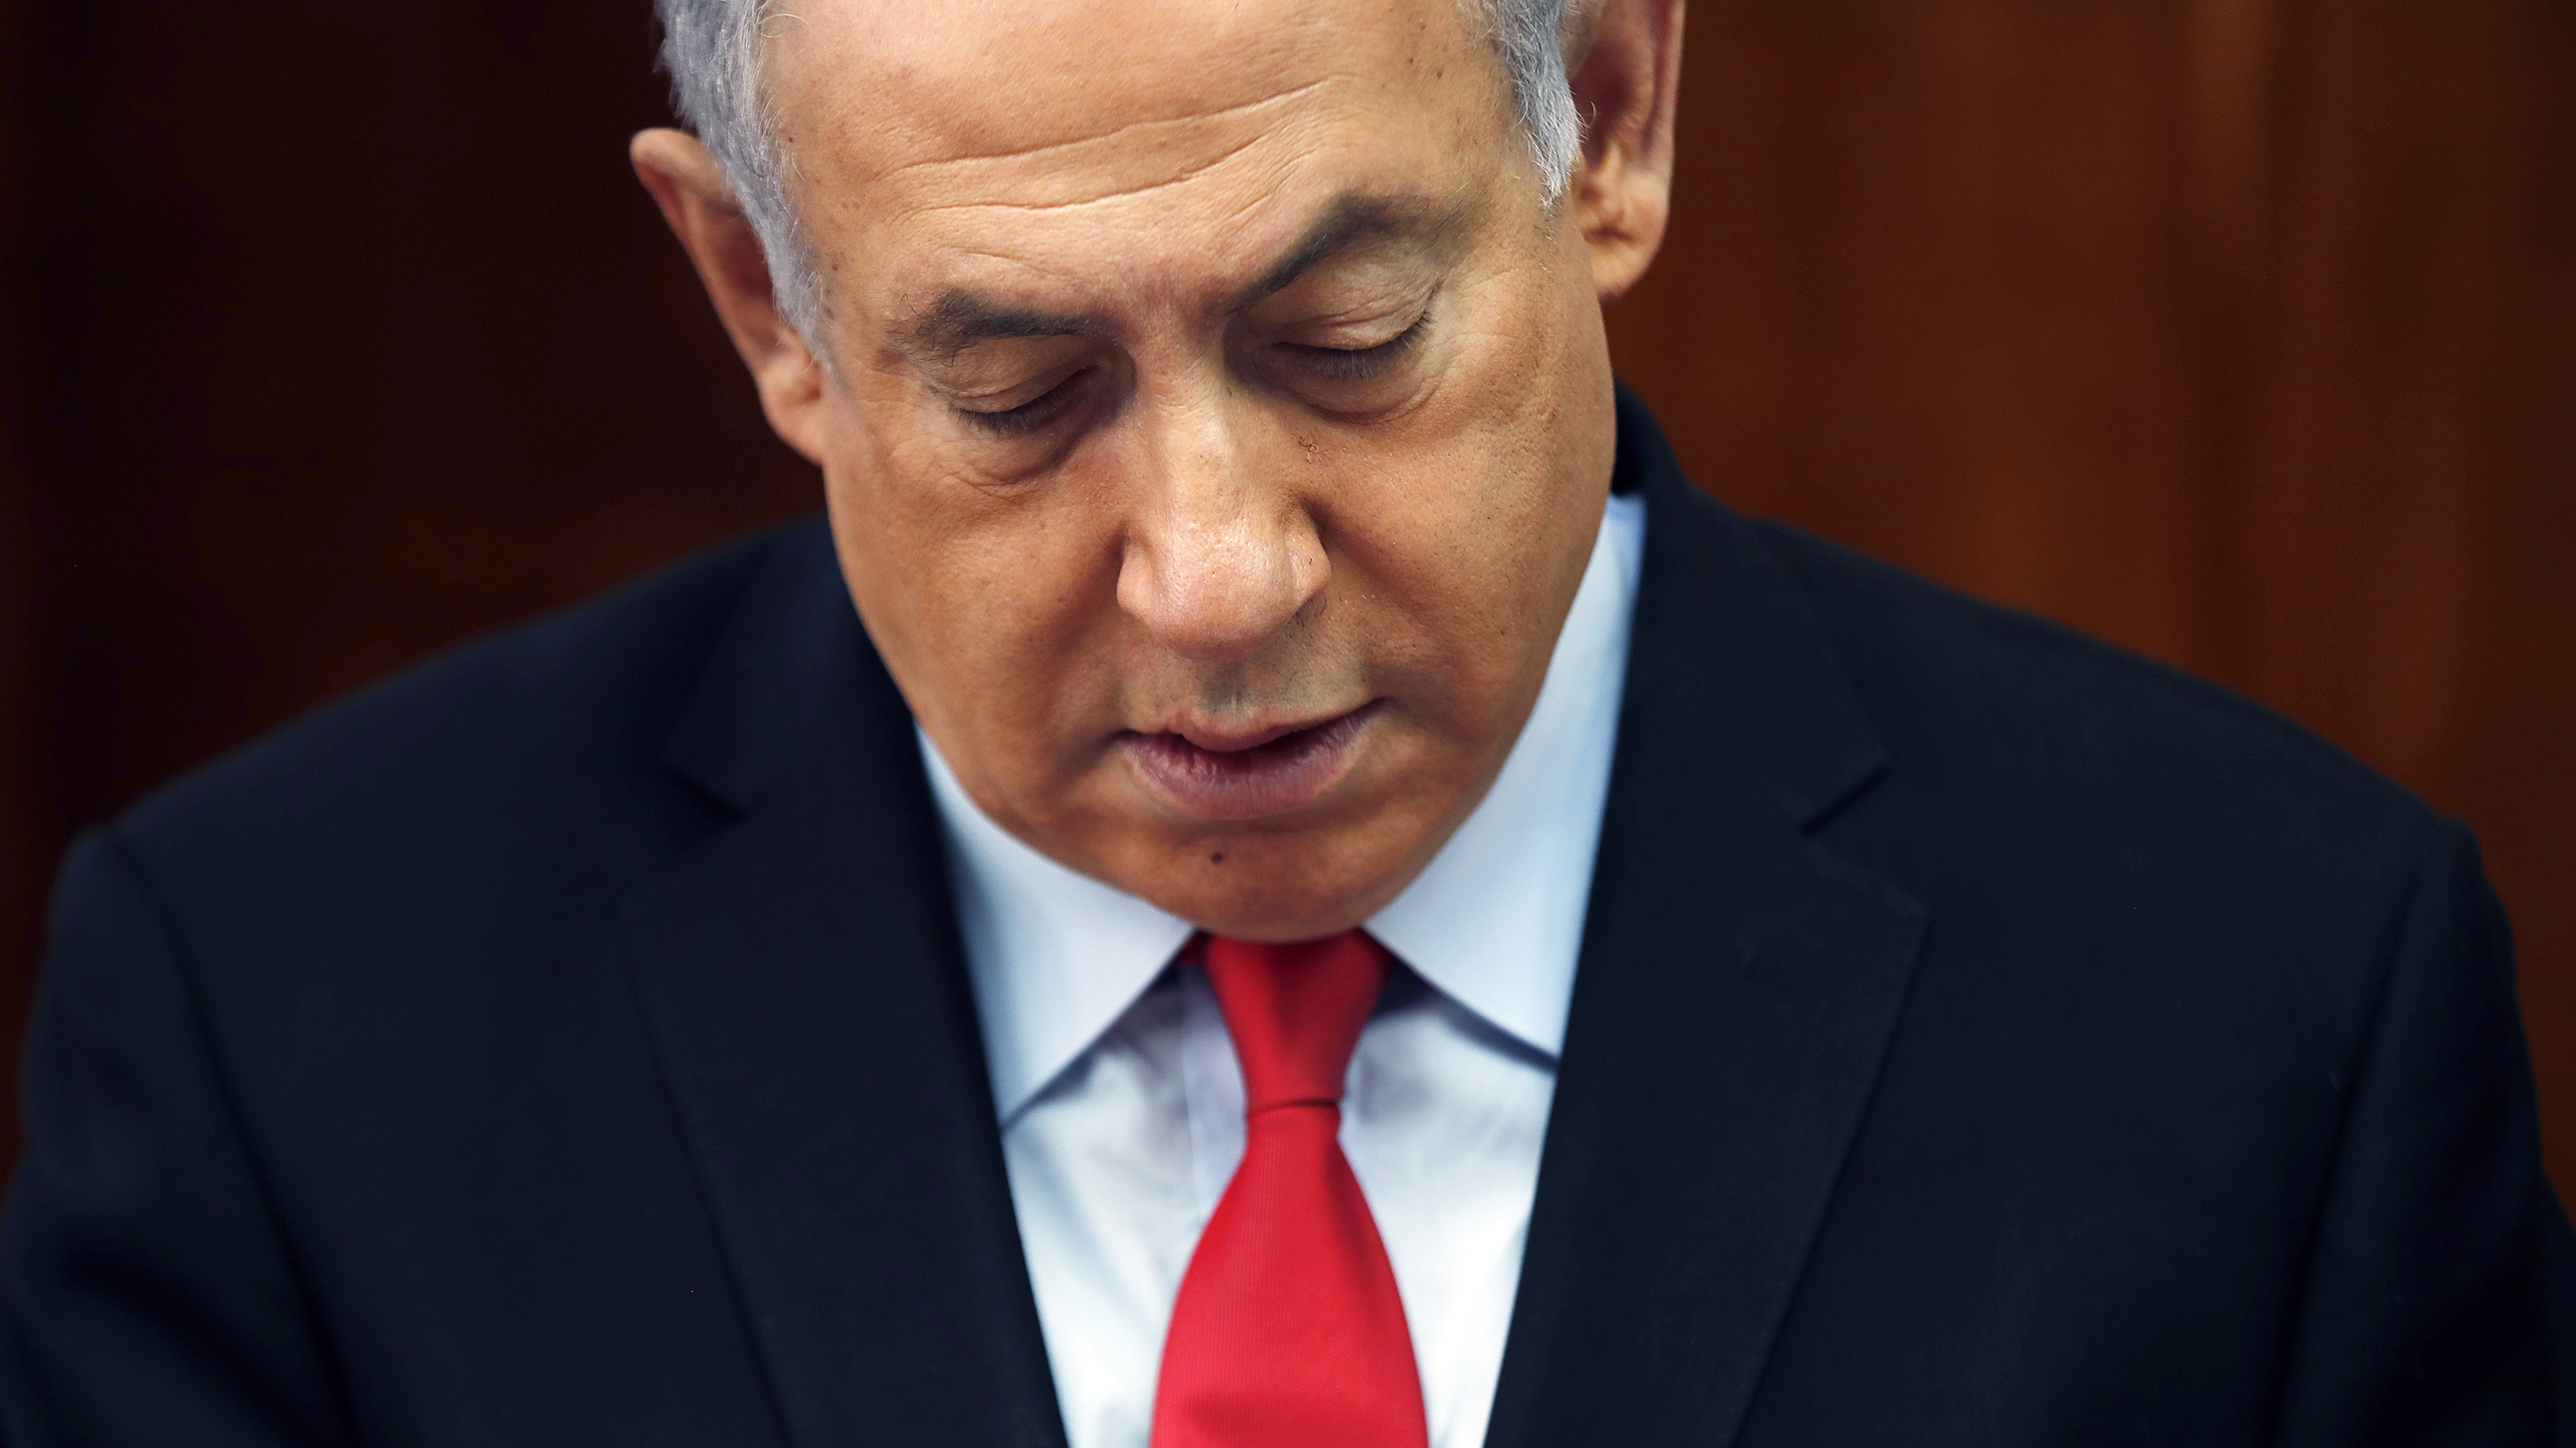 Israeli Prime Minister Netanyahu Is Facing Charges In 3 Corruption Cases